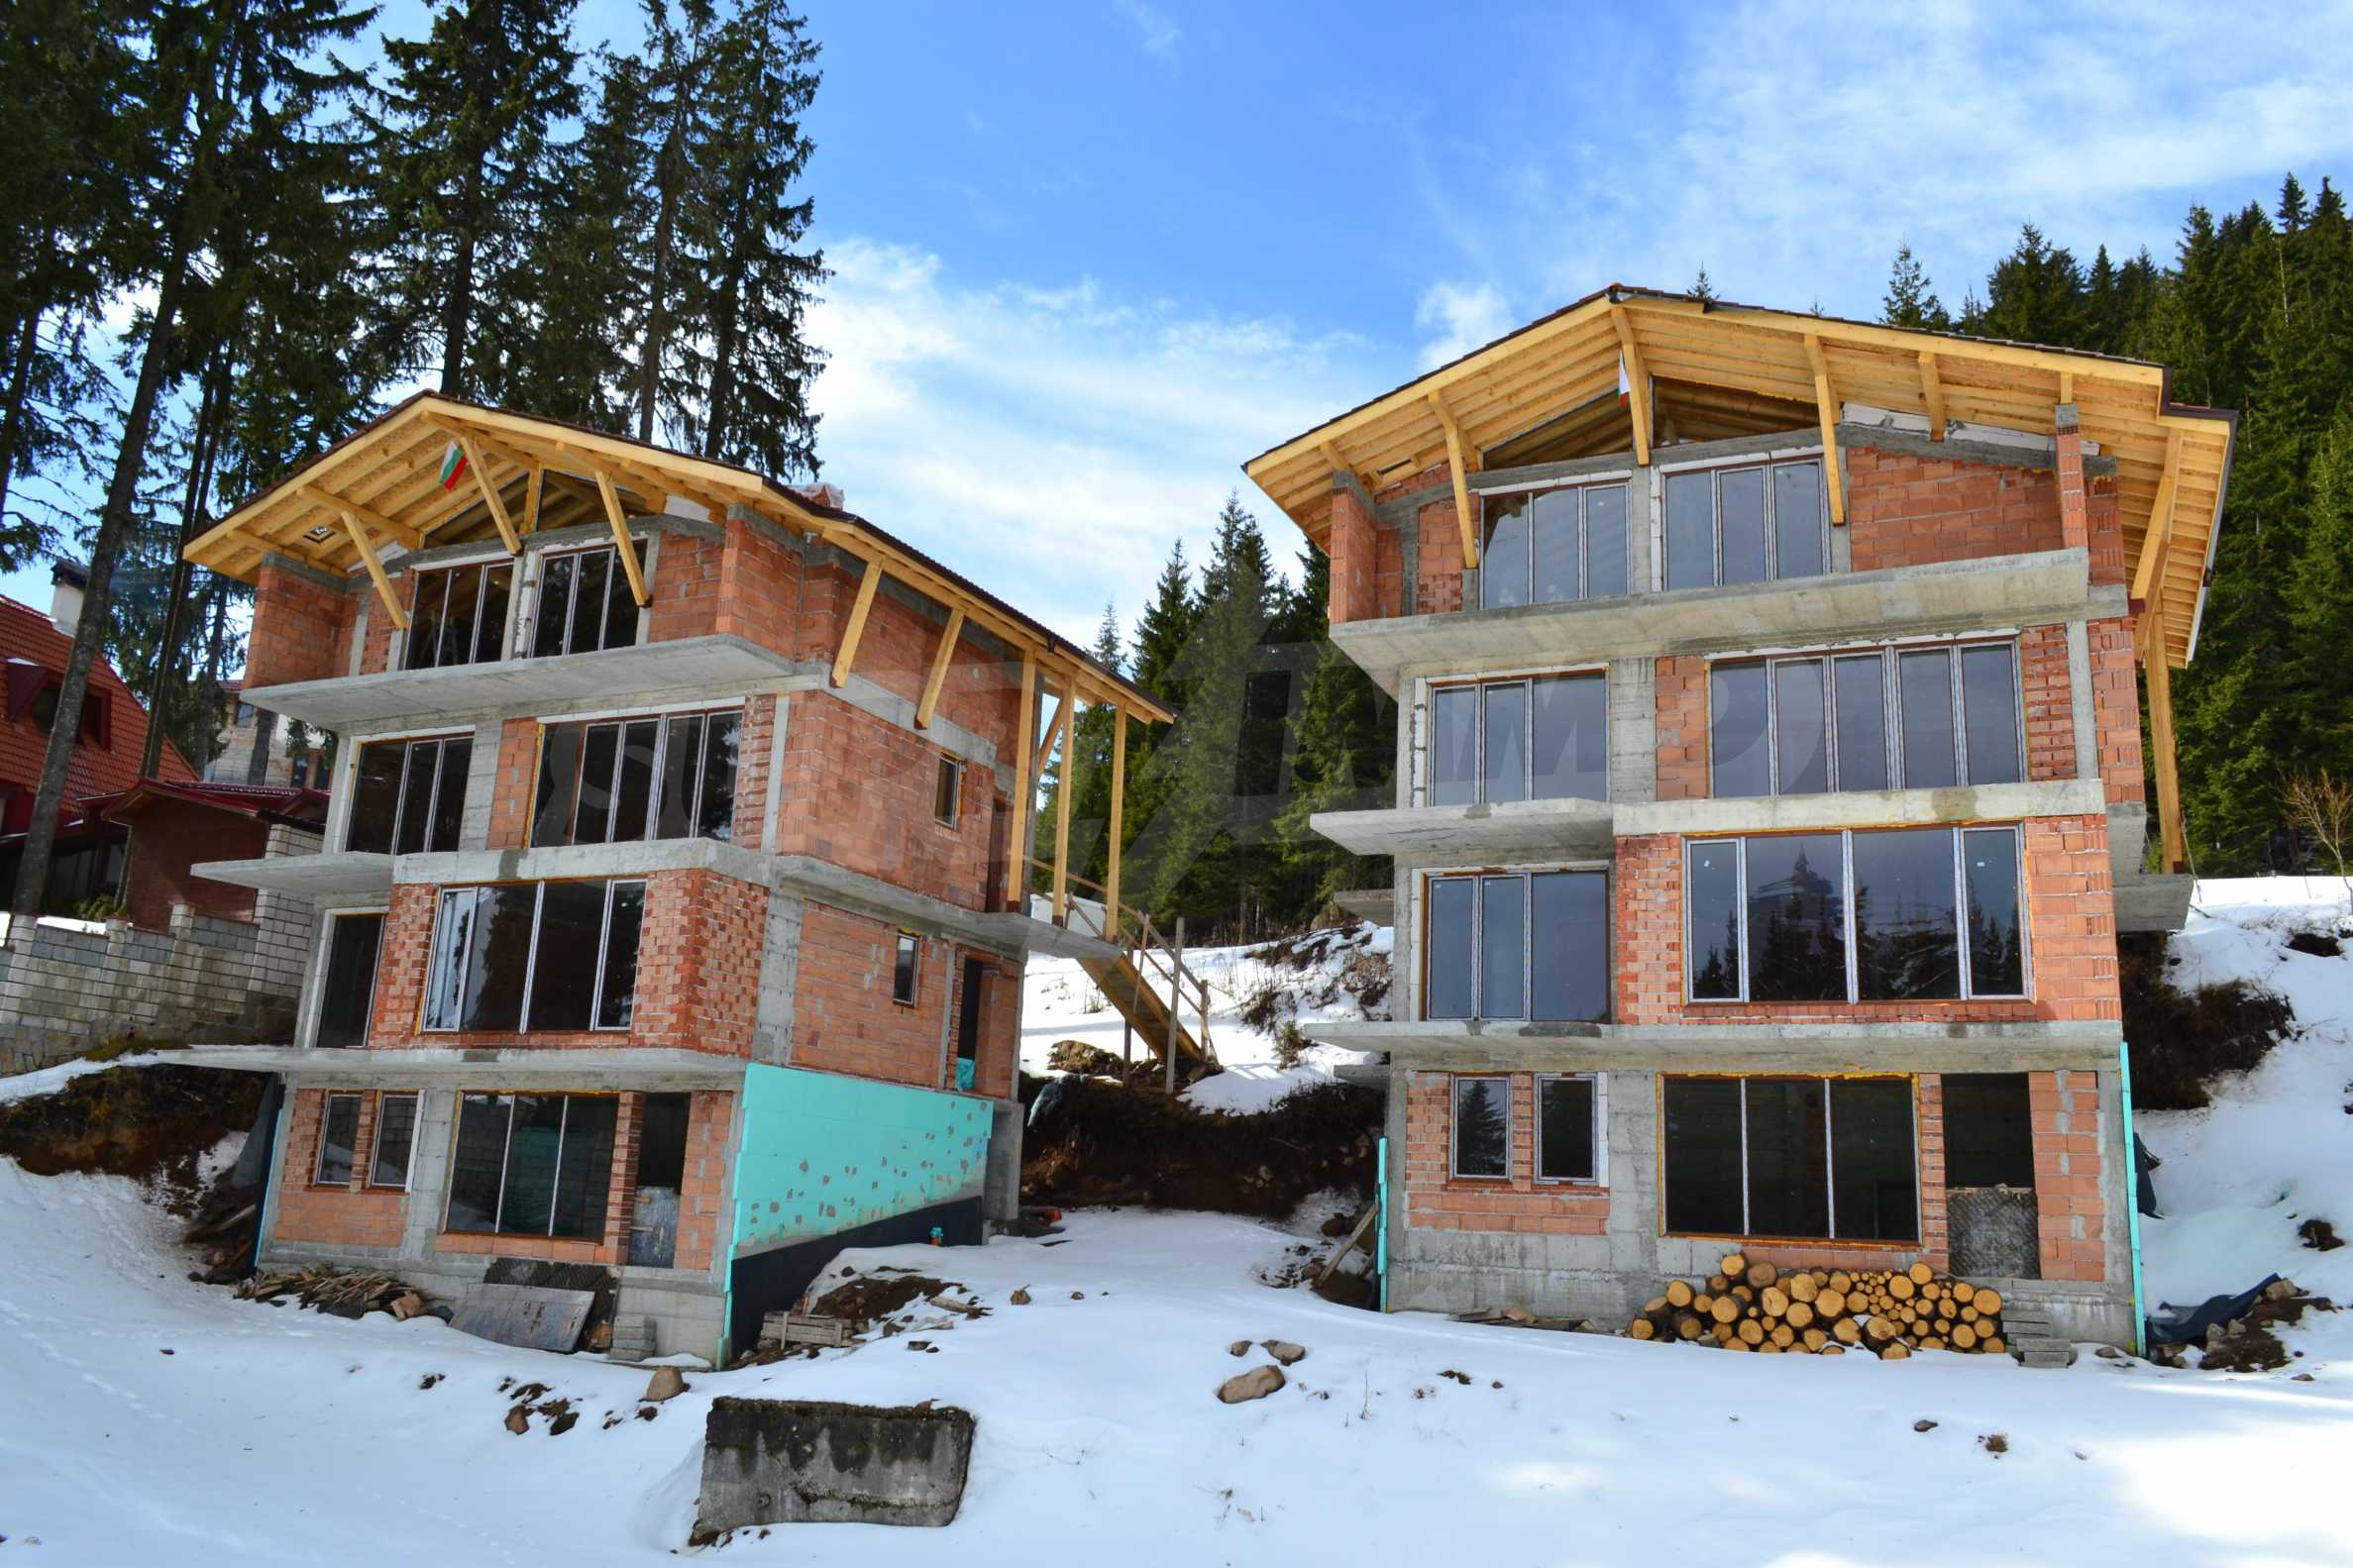 Modern, finished houses near the ski run and road in Pamporovo